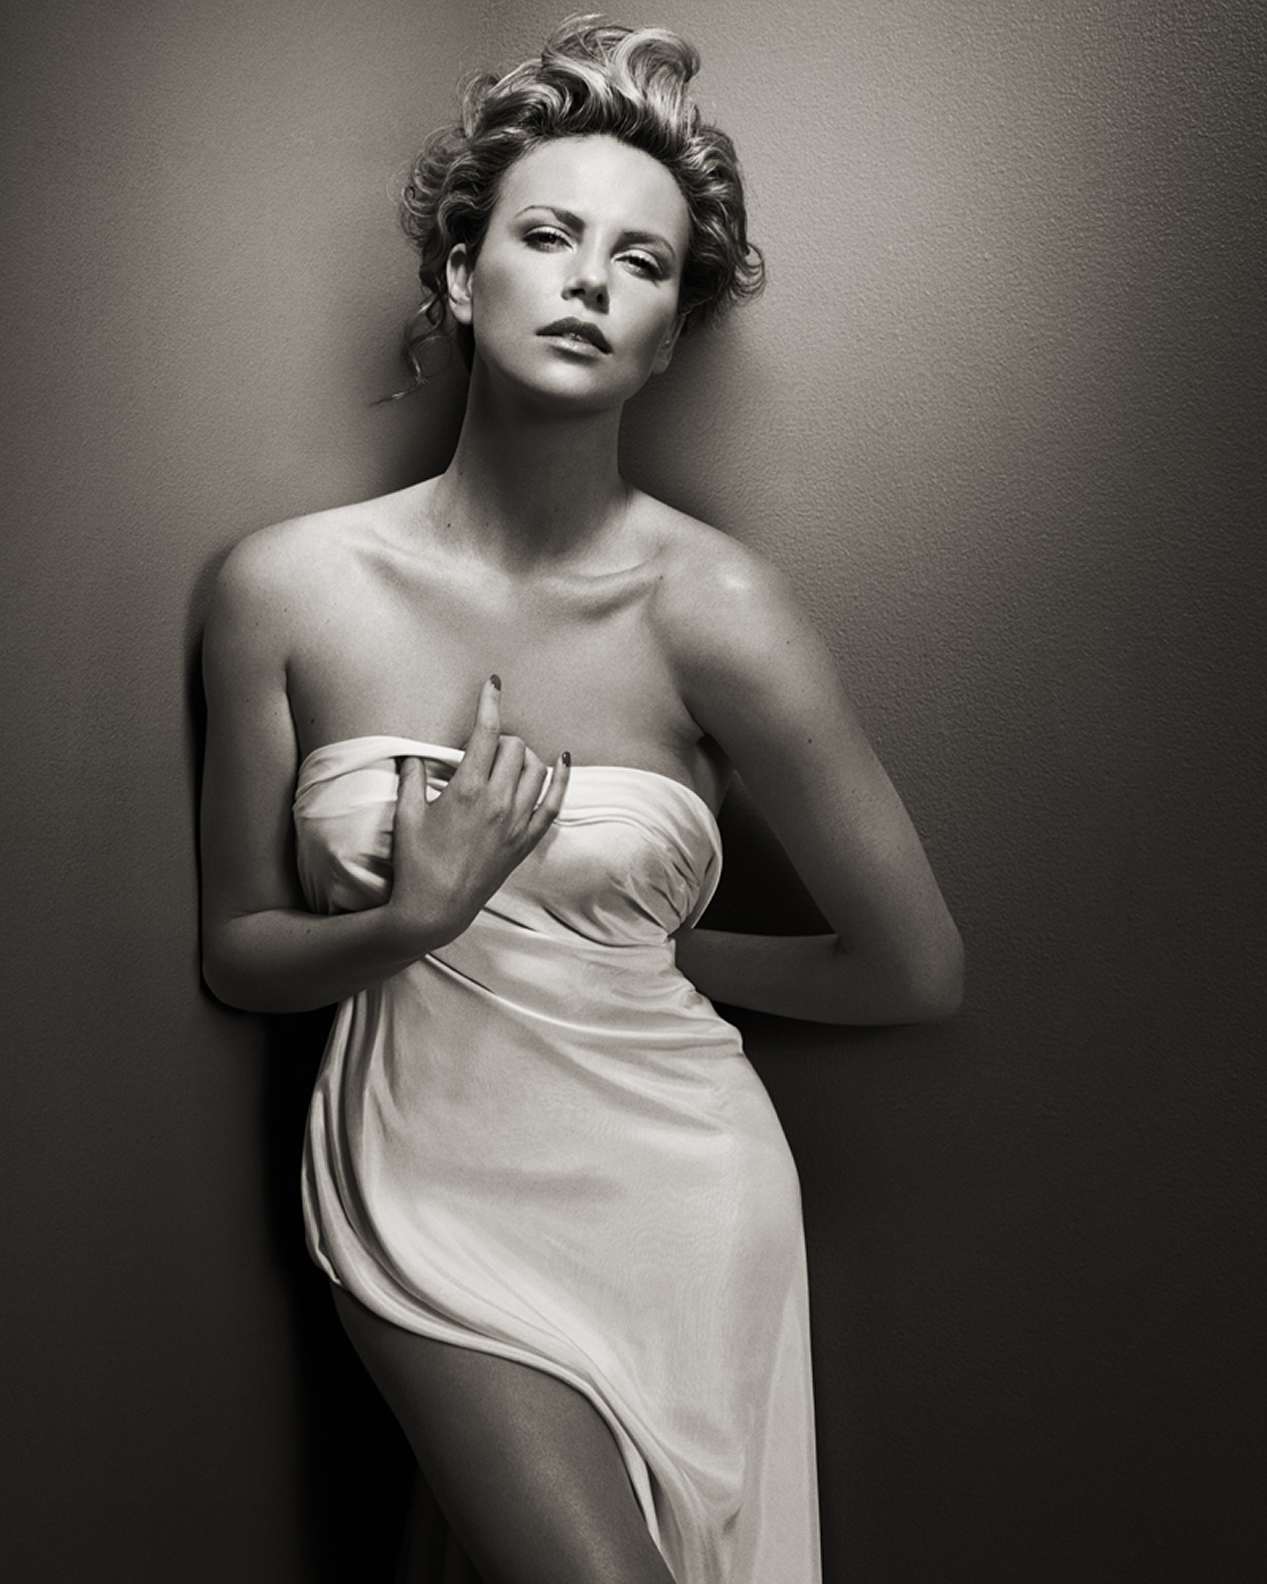 charlize-theron-par-Vincent-Peters-exposition-hune-paris-folkr